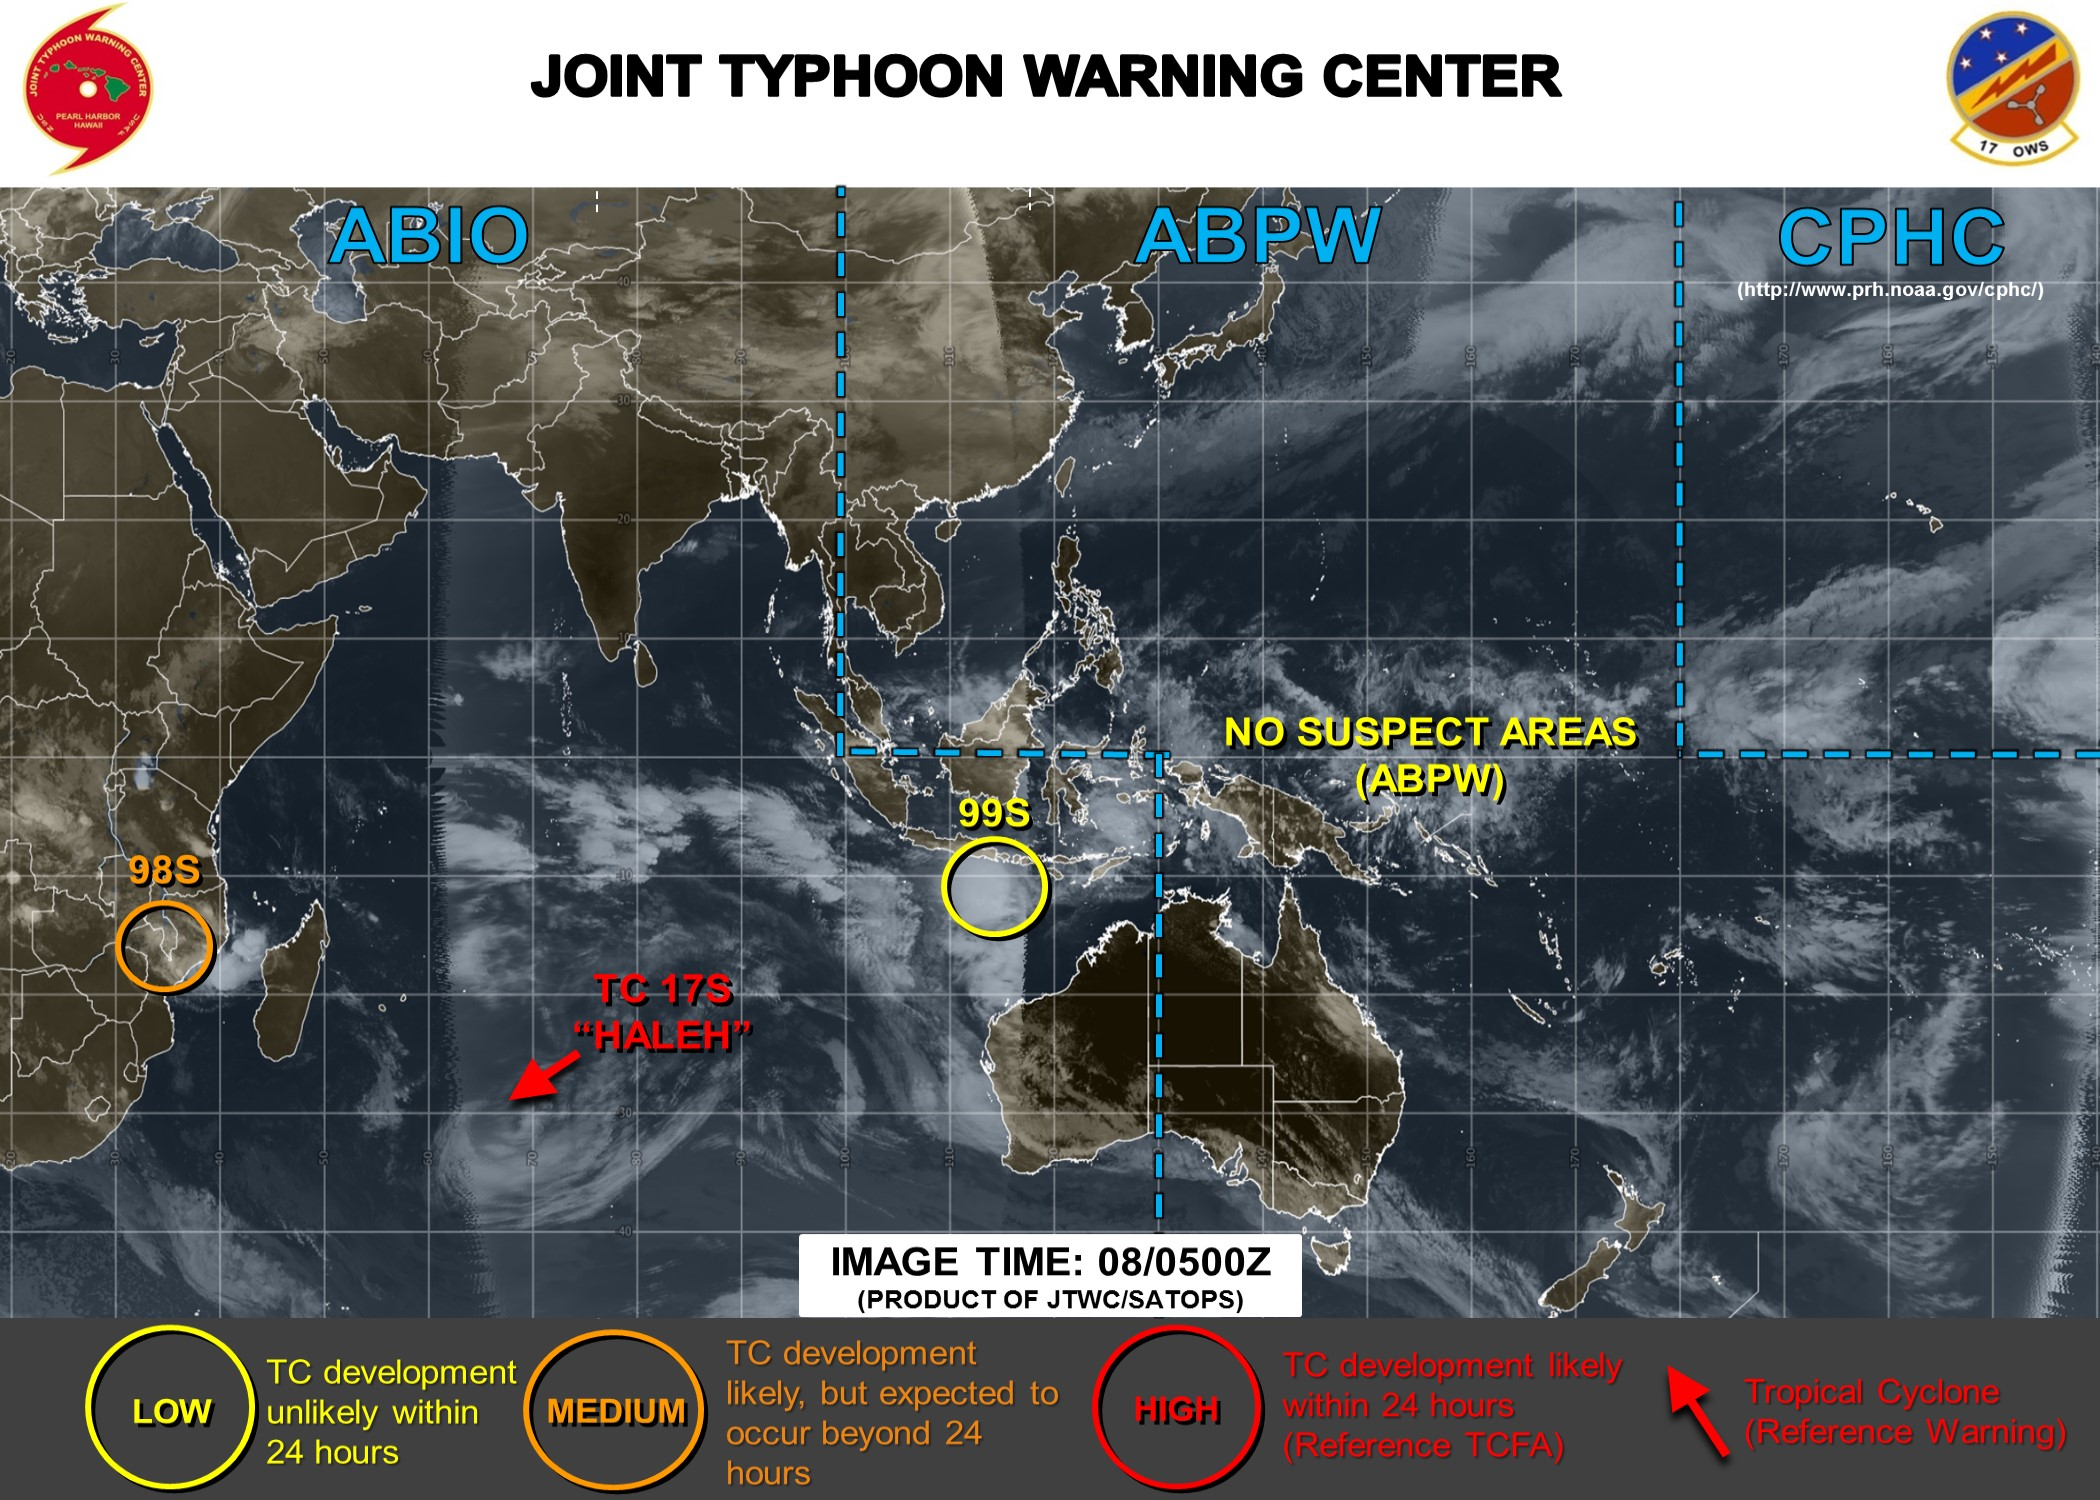 09UTC: South Indian: 98S and 99S monitored by the JTWC